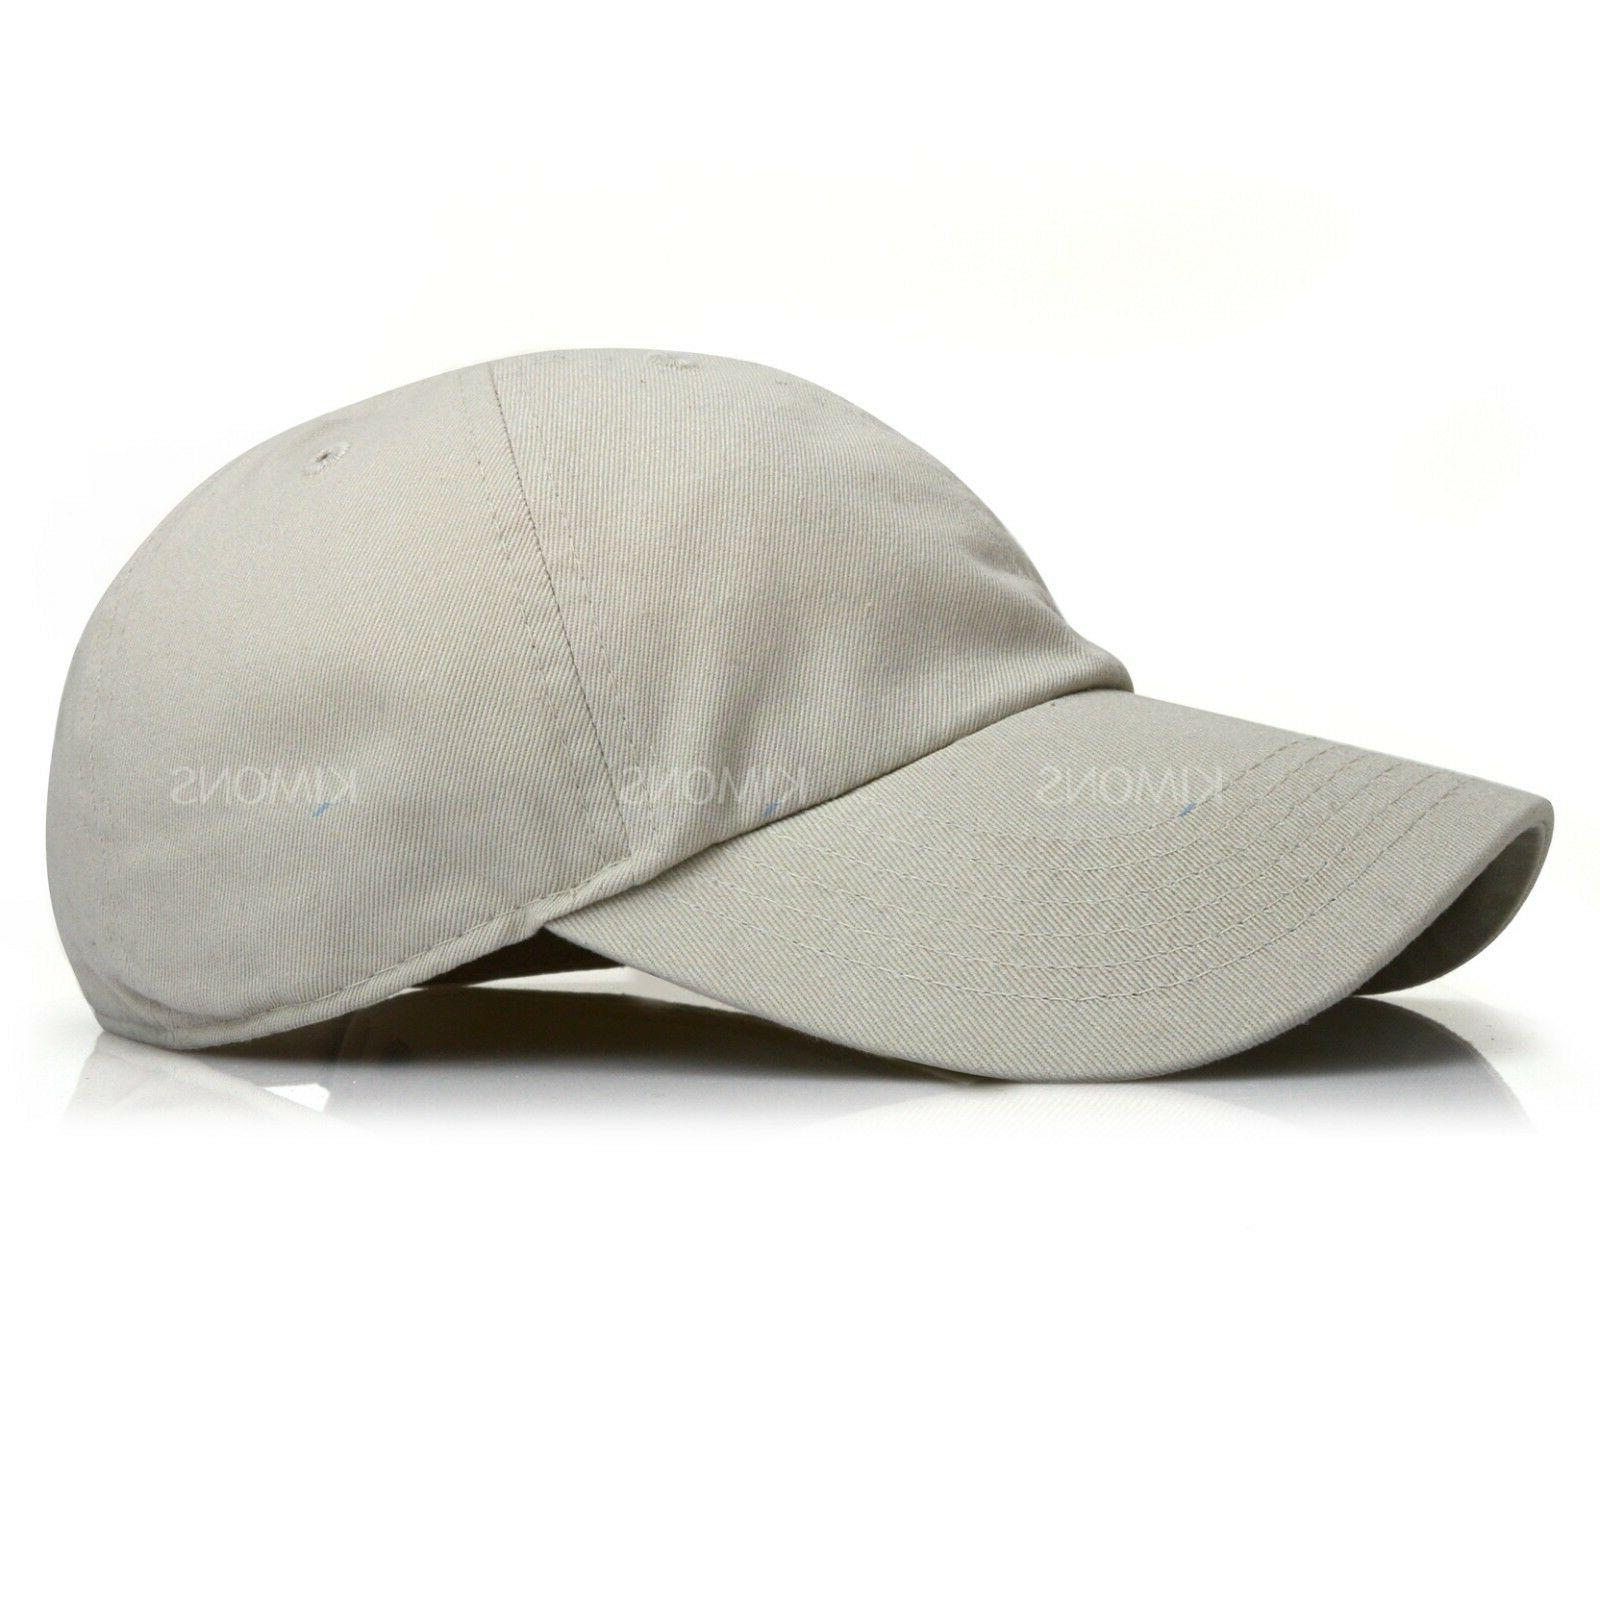 Polo Cotton Cap Adjustable Men